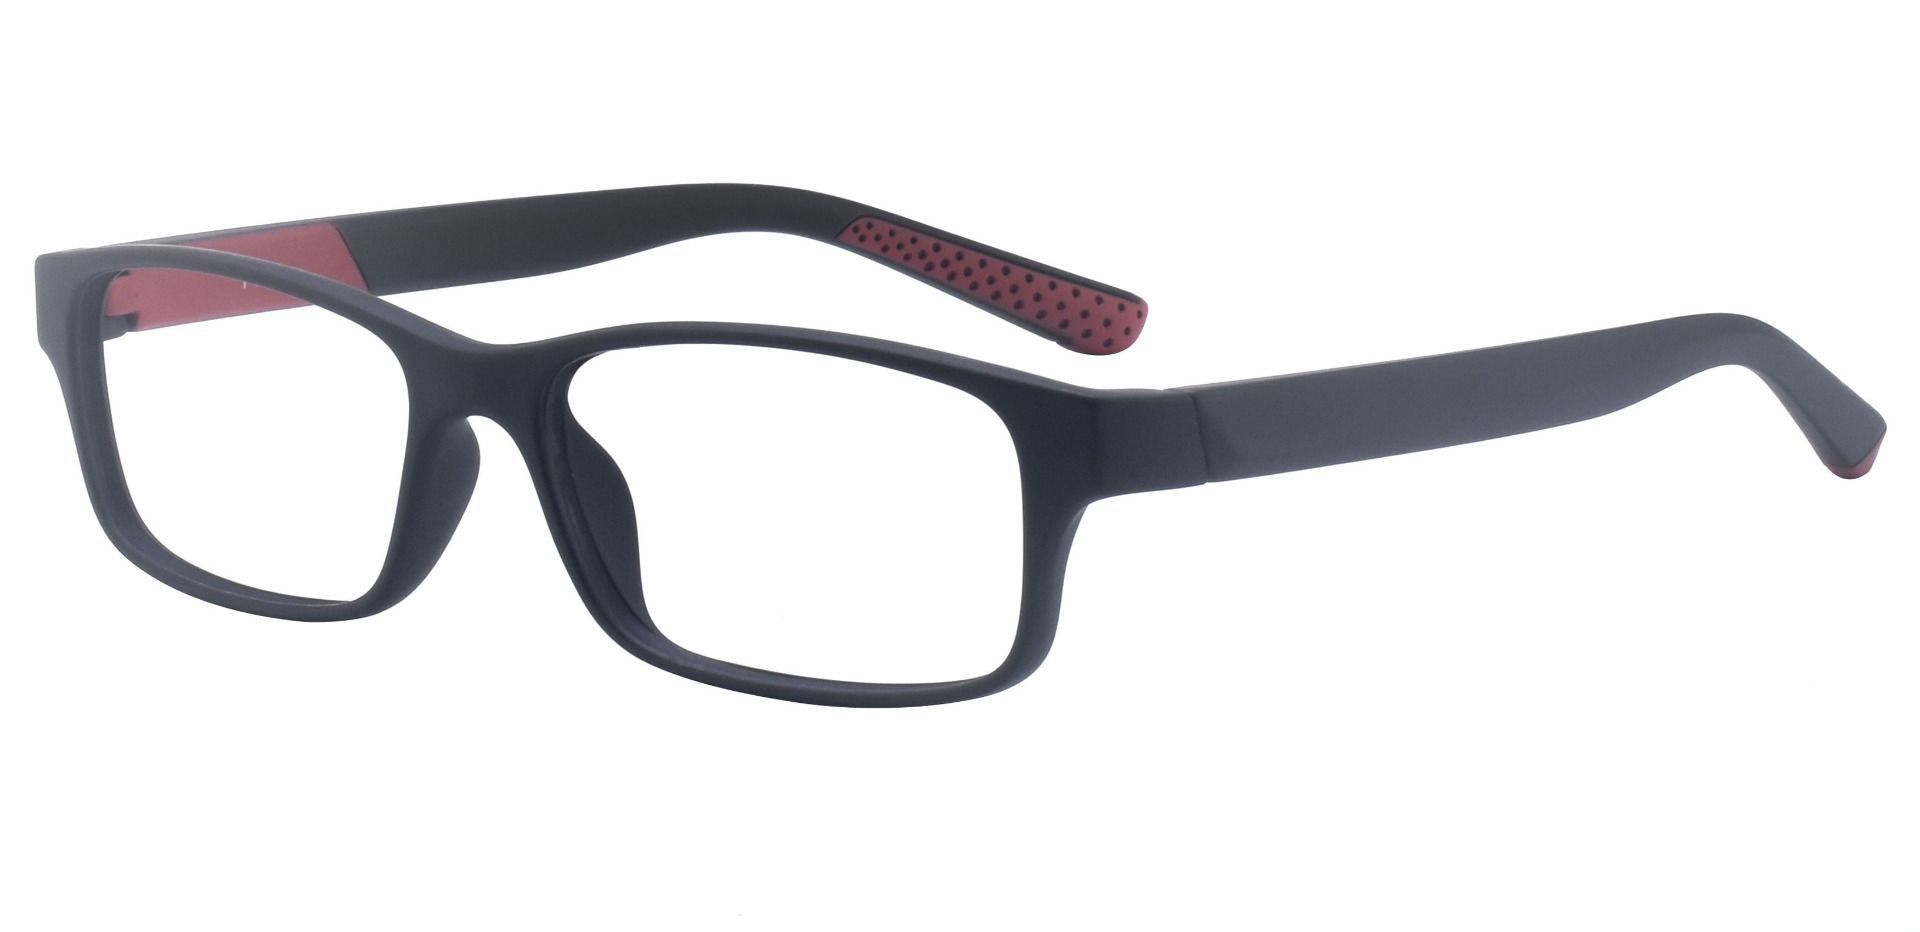 Meridian Rectangle Prescription Glasses - Matte Black/red